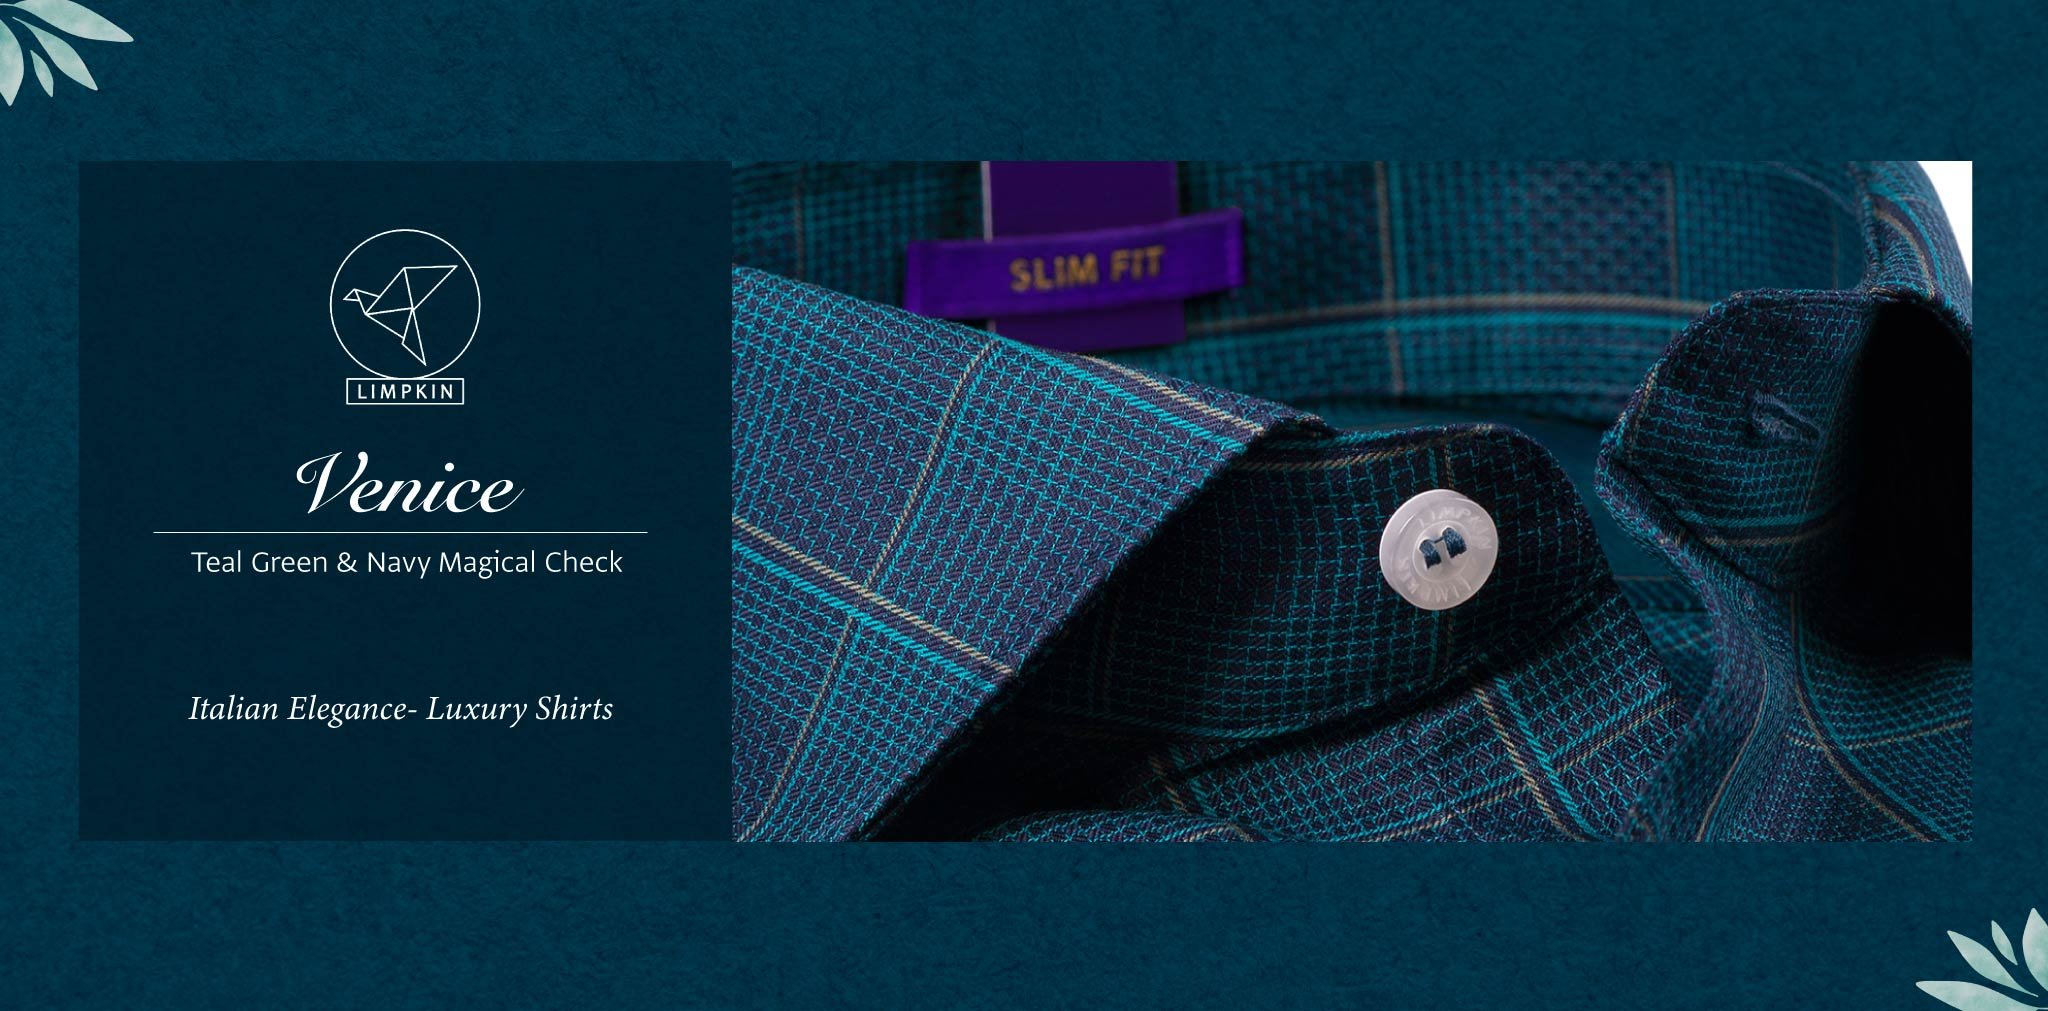 Venice- Teal Green & Navy Magical Check- 2 Ply Pure Egyptian Giza Cotton- Delivery from 20th Oct - Banner